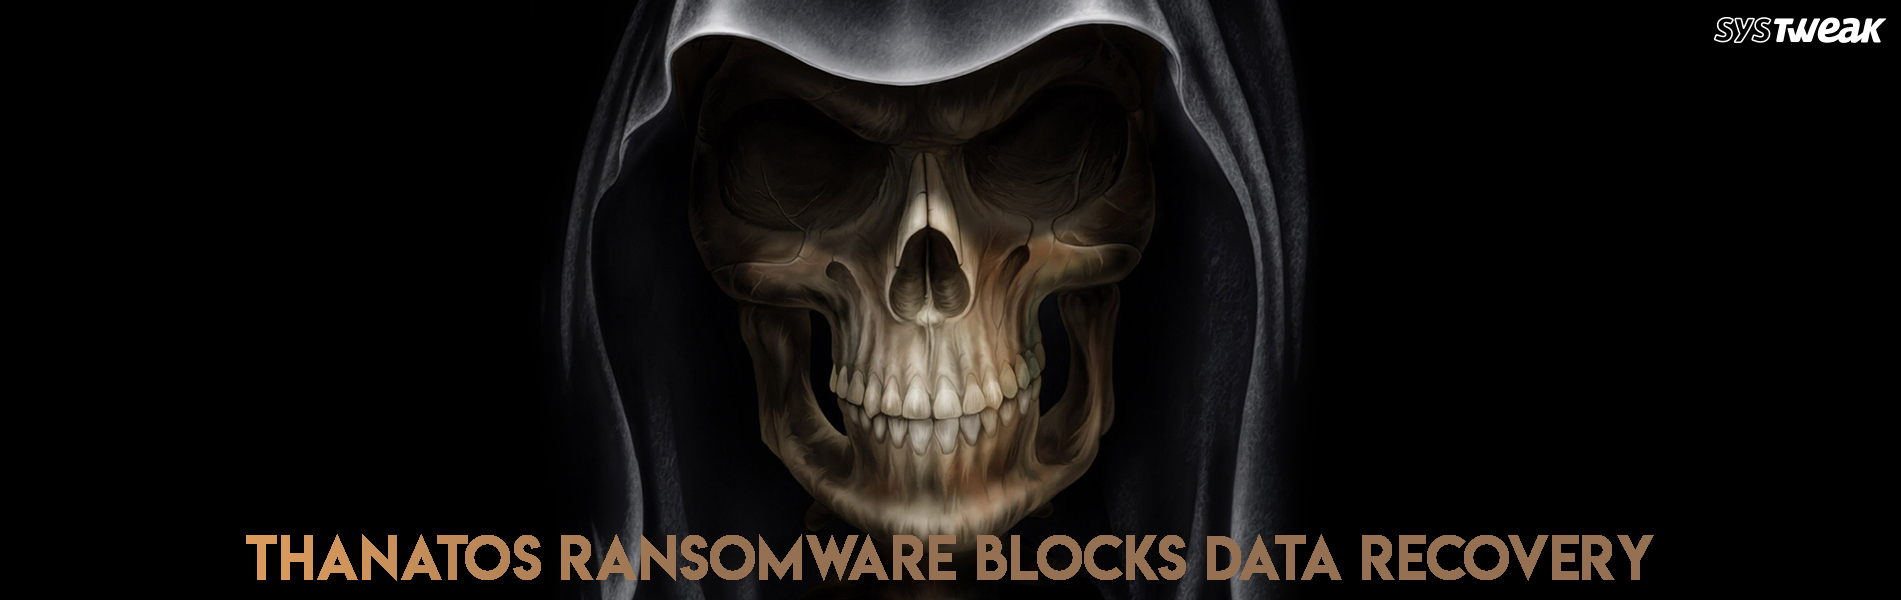 Thanatos Ransomware Makes Data Recovery Impossible